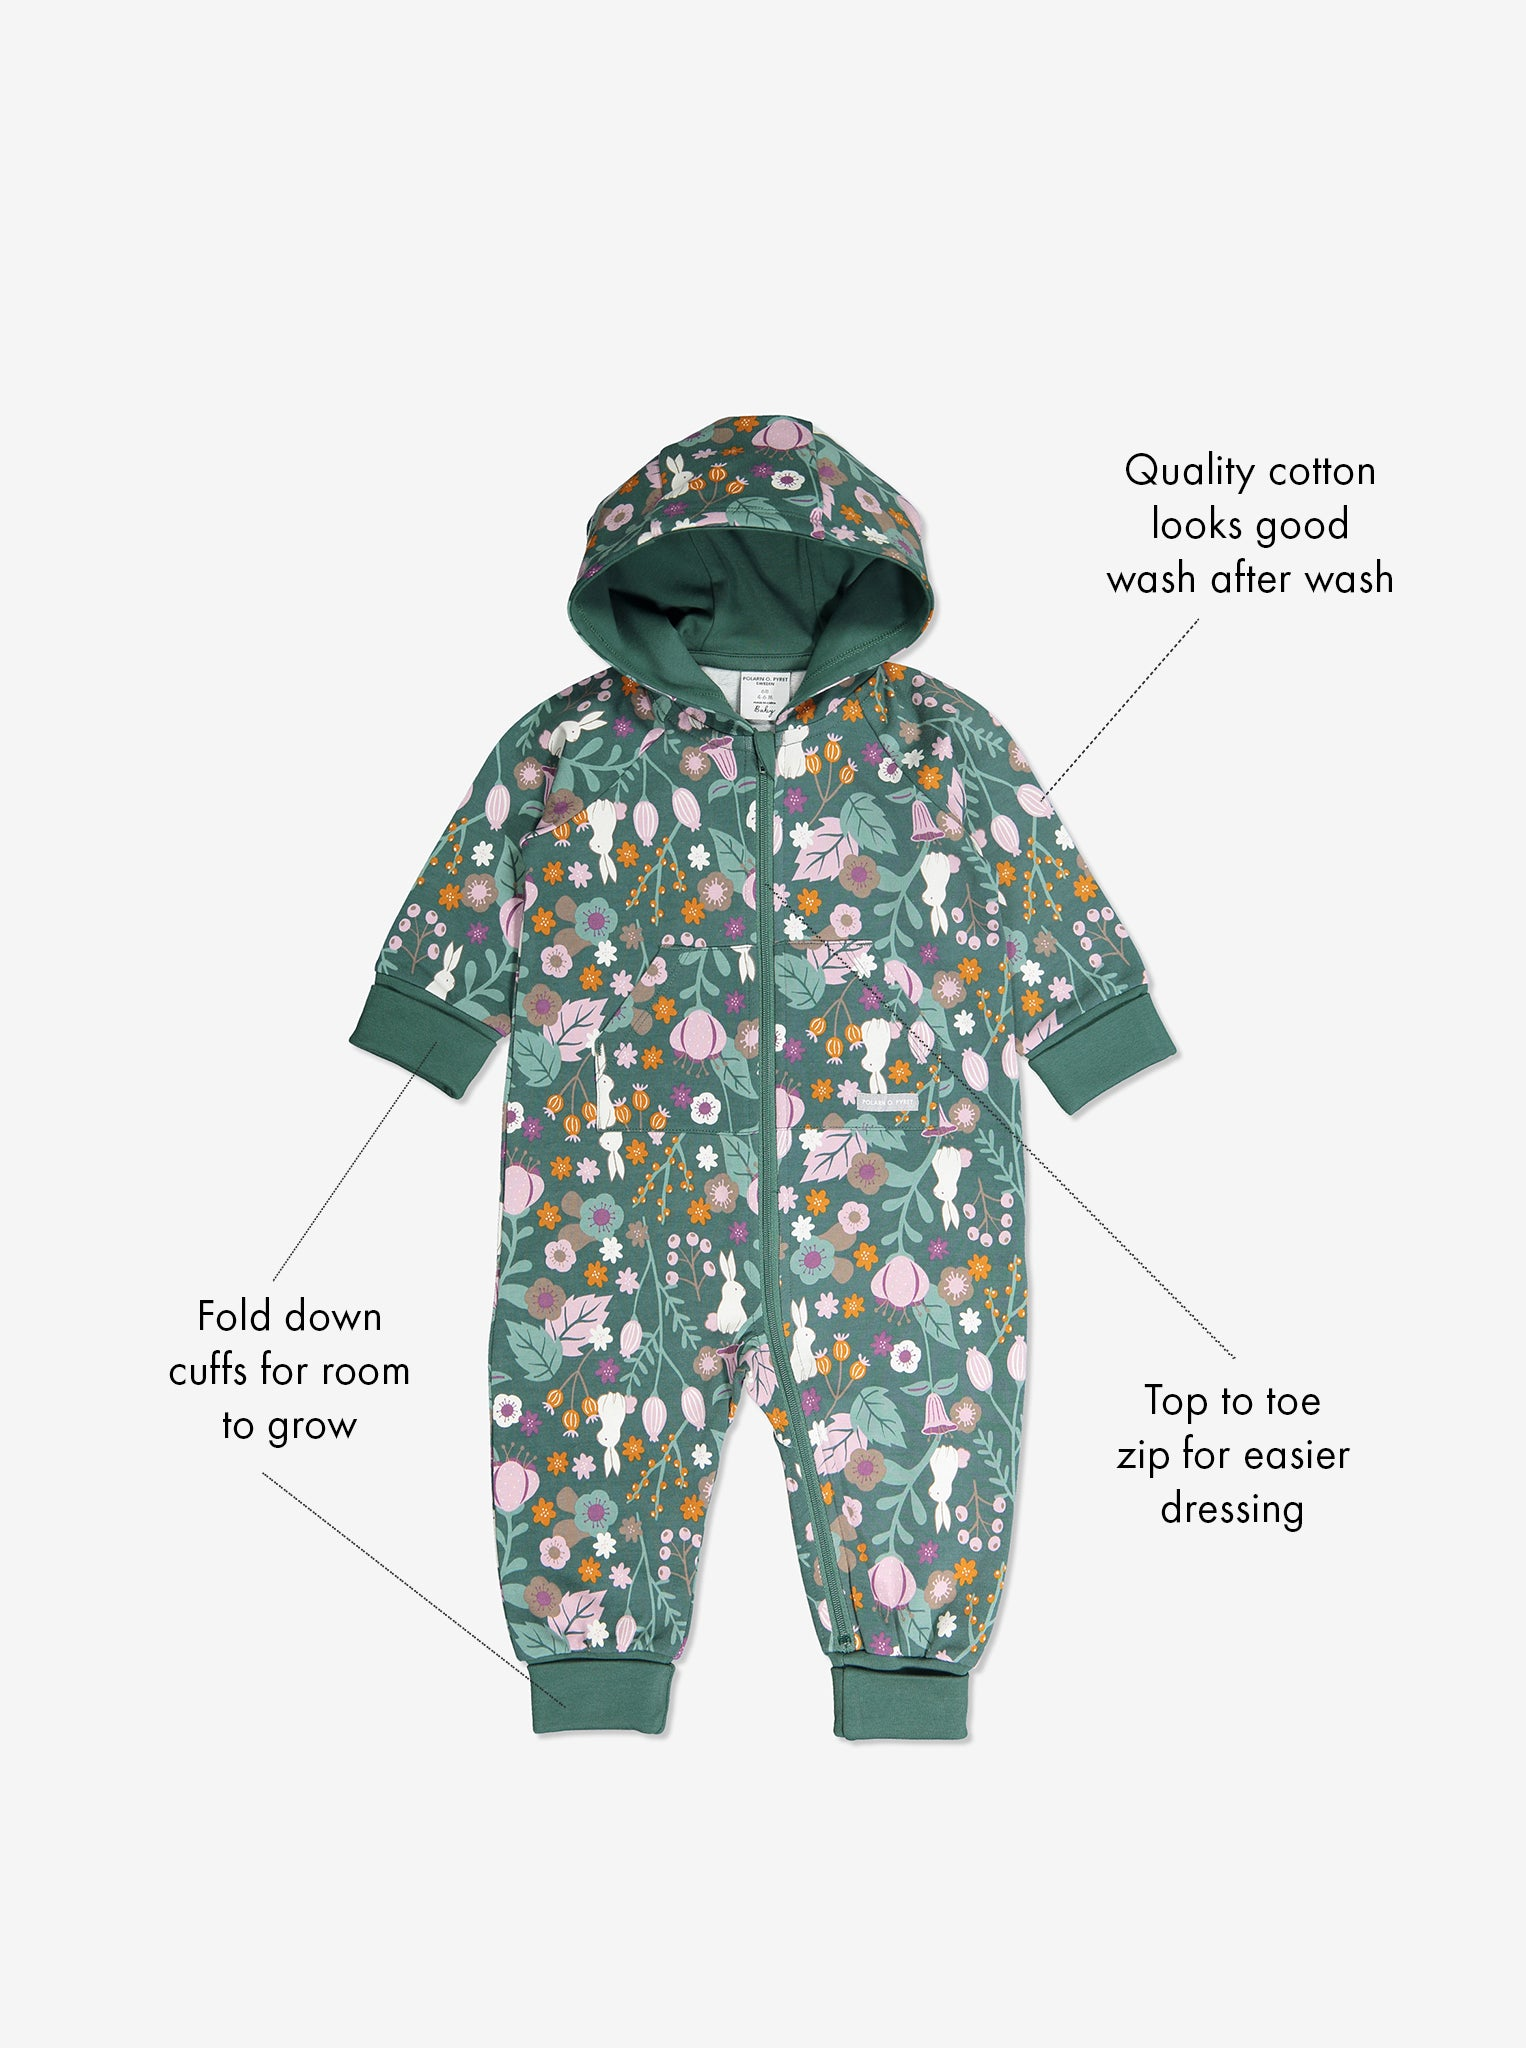 GOTS organic cotton baby all-in-one in a woodland print with text labels shown on the sides